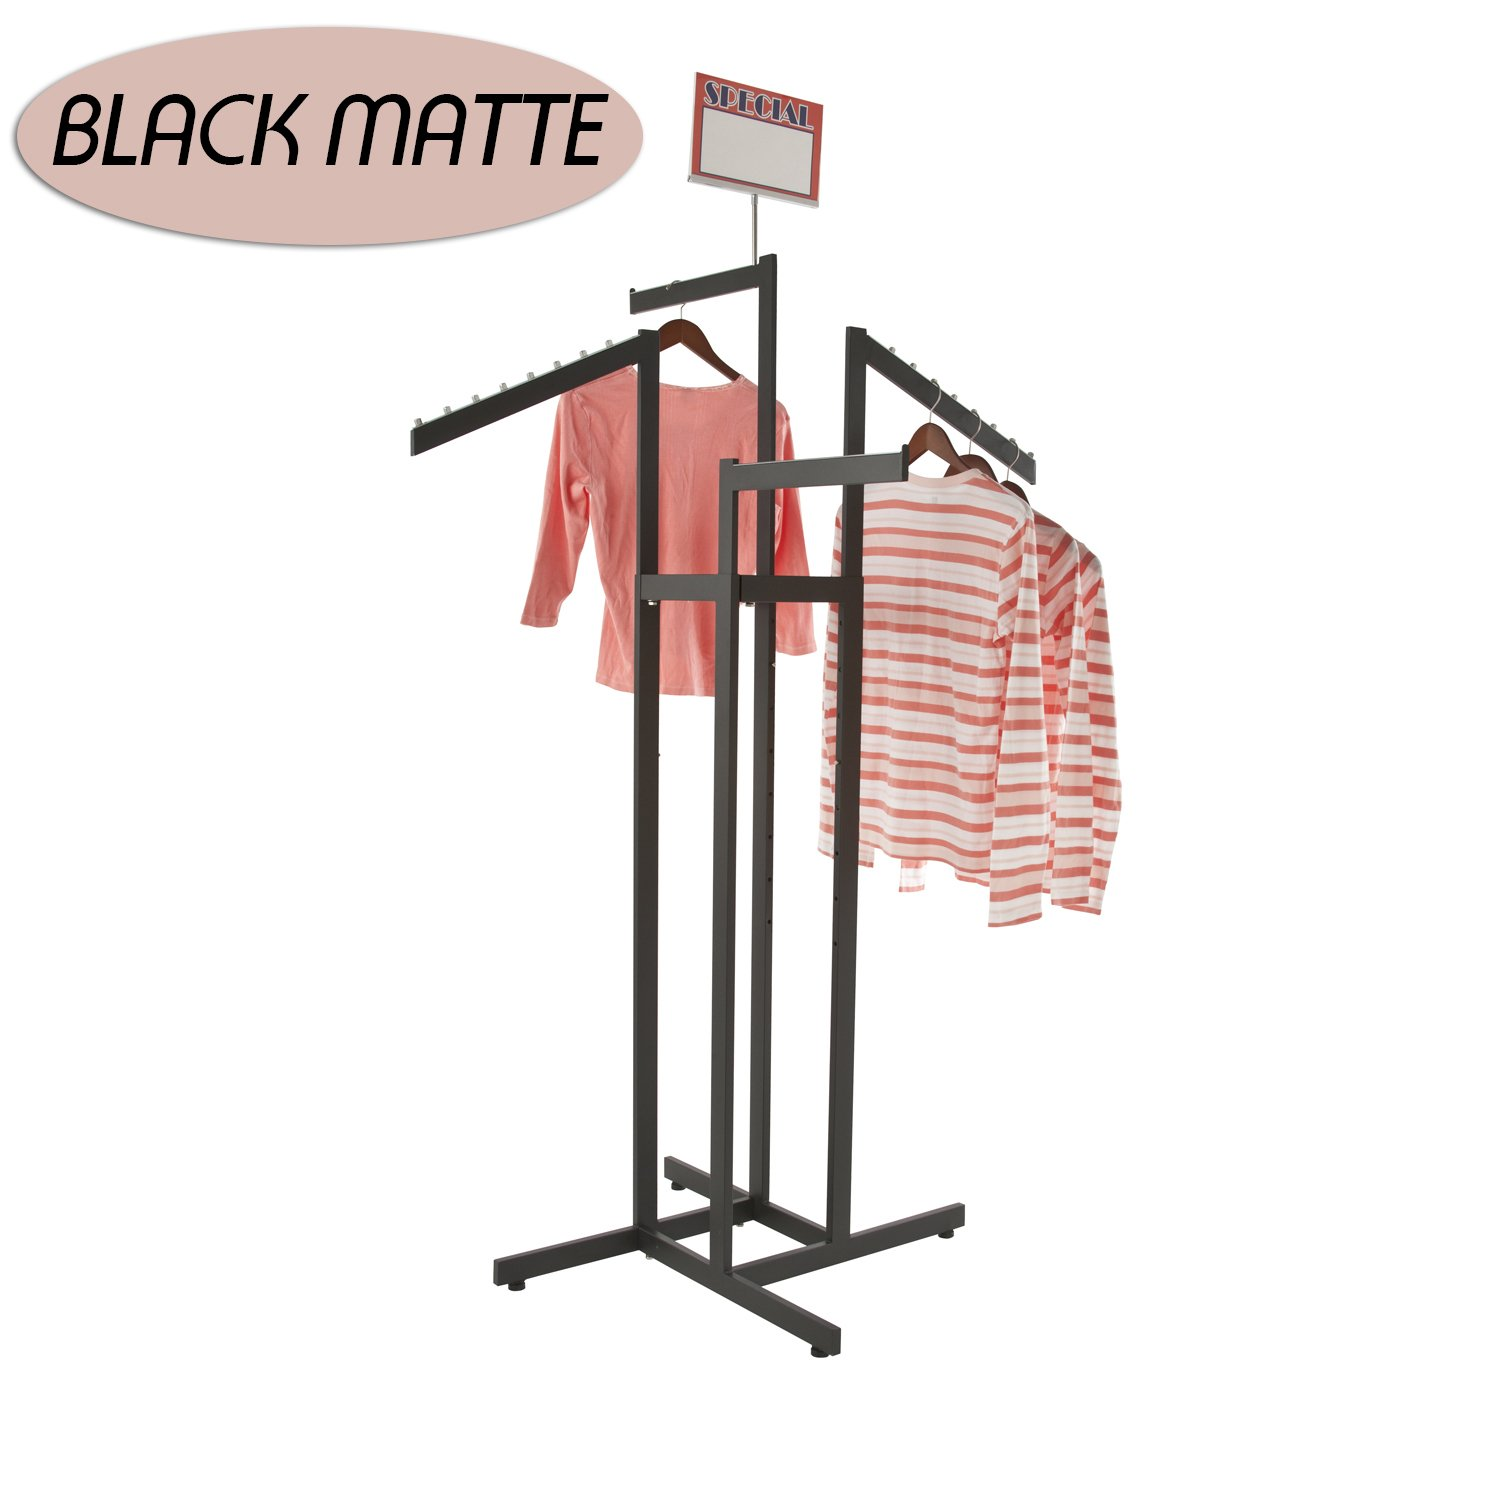 Clothing Rack - Heavy Duty Black 4 Way Rack, Adjustable Arms, Square Tubing, Perfect for Clothing Store Display With 2 Straight Arms and 2 Slanted Arms